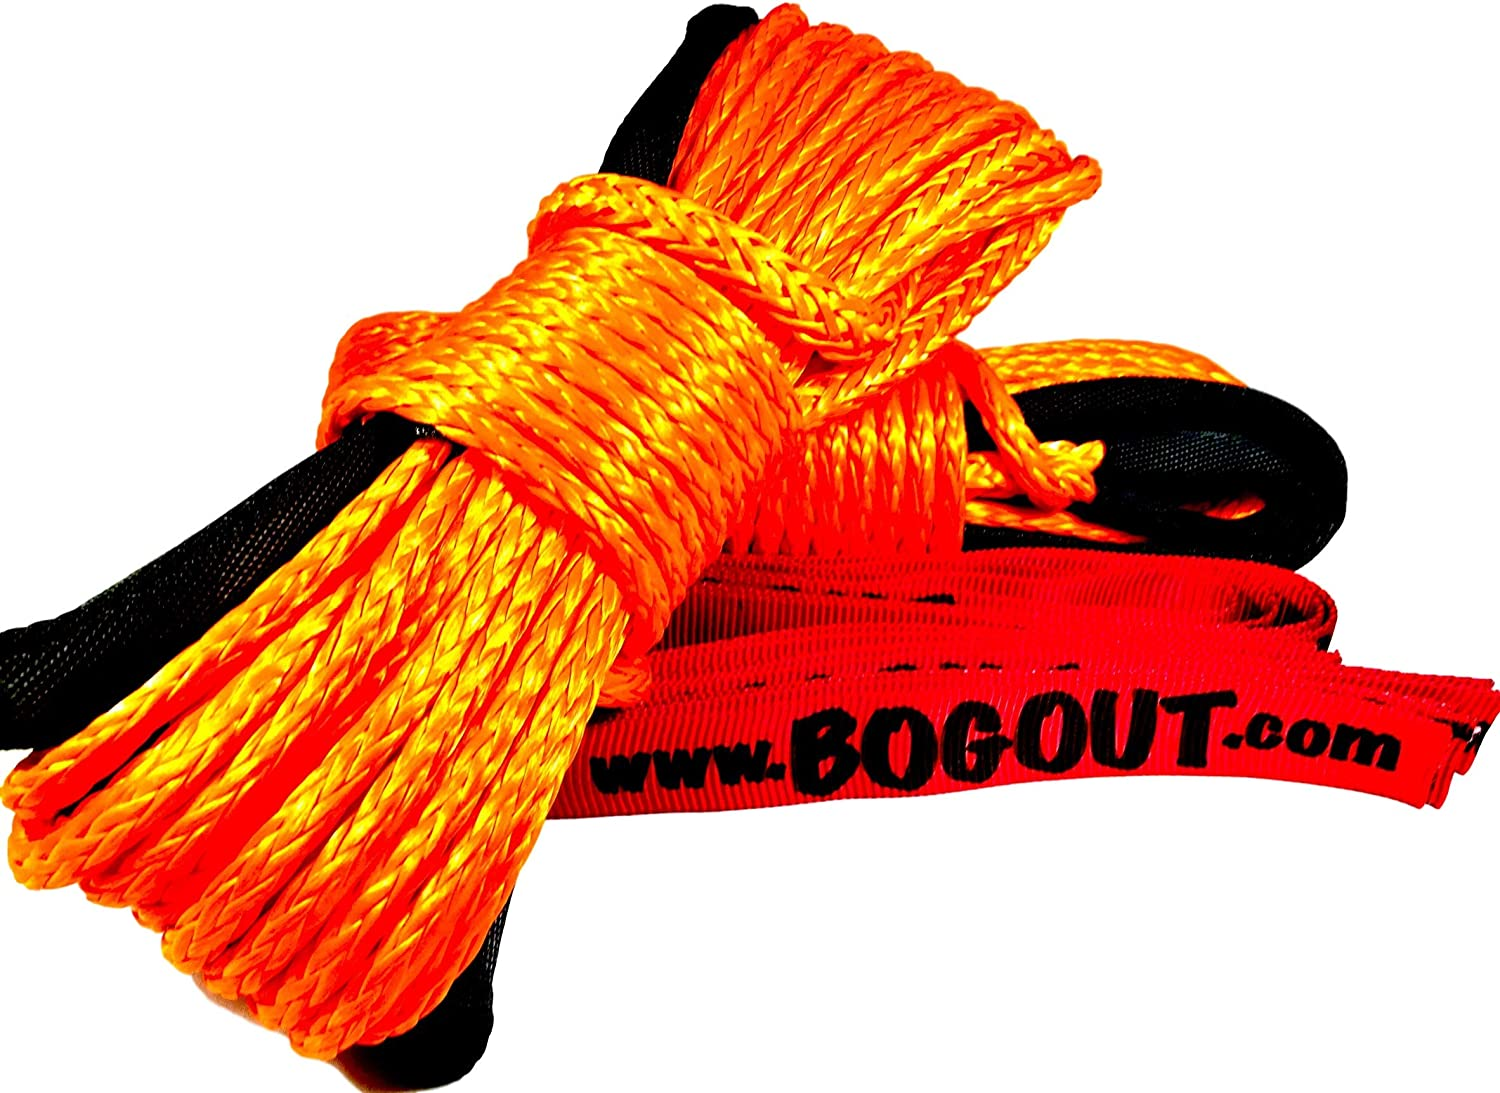 50ft x 0.25in Synthetic Extension Rope for Vehicle Recovery Gear and Offroad Recovery BOGOUT Super Rope Twin Pack 2